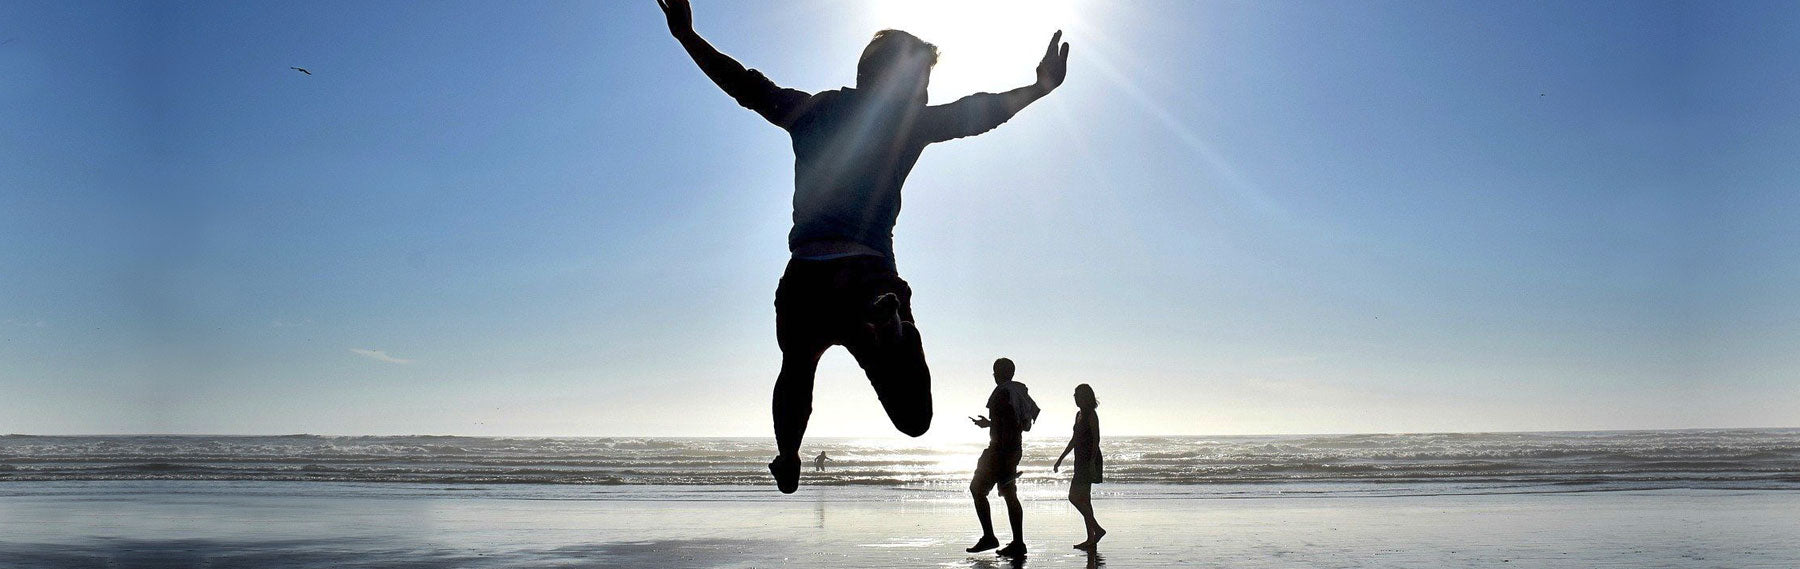 Man jumping with arms out on beach with sun behind him with a couple and the sun behind him